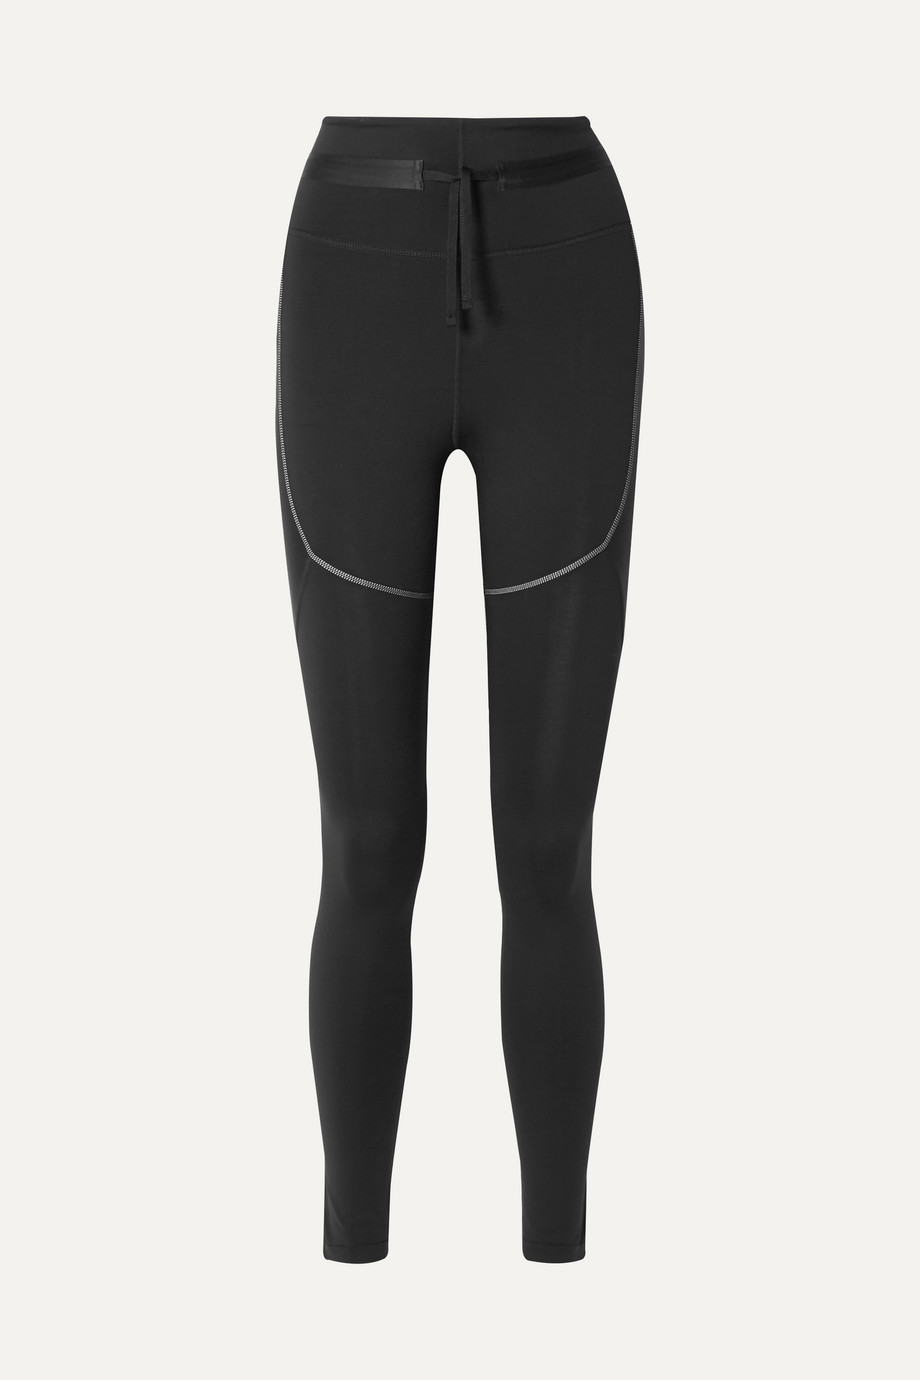 Nike City Ready paneled stretch leggings